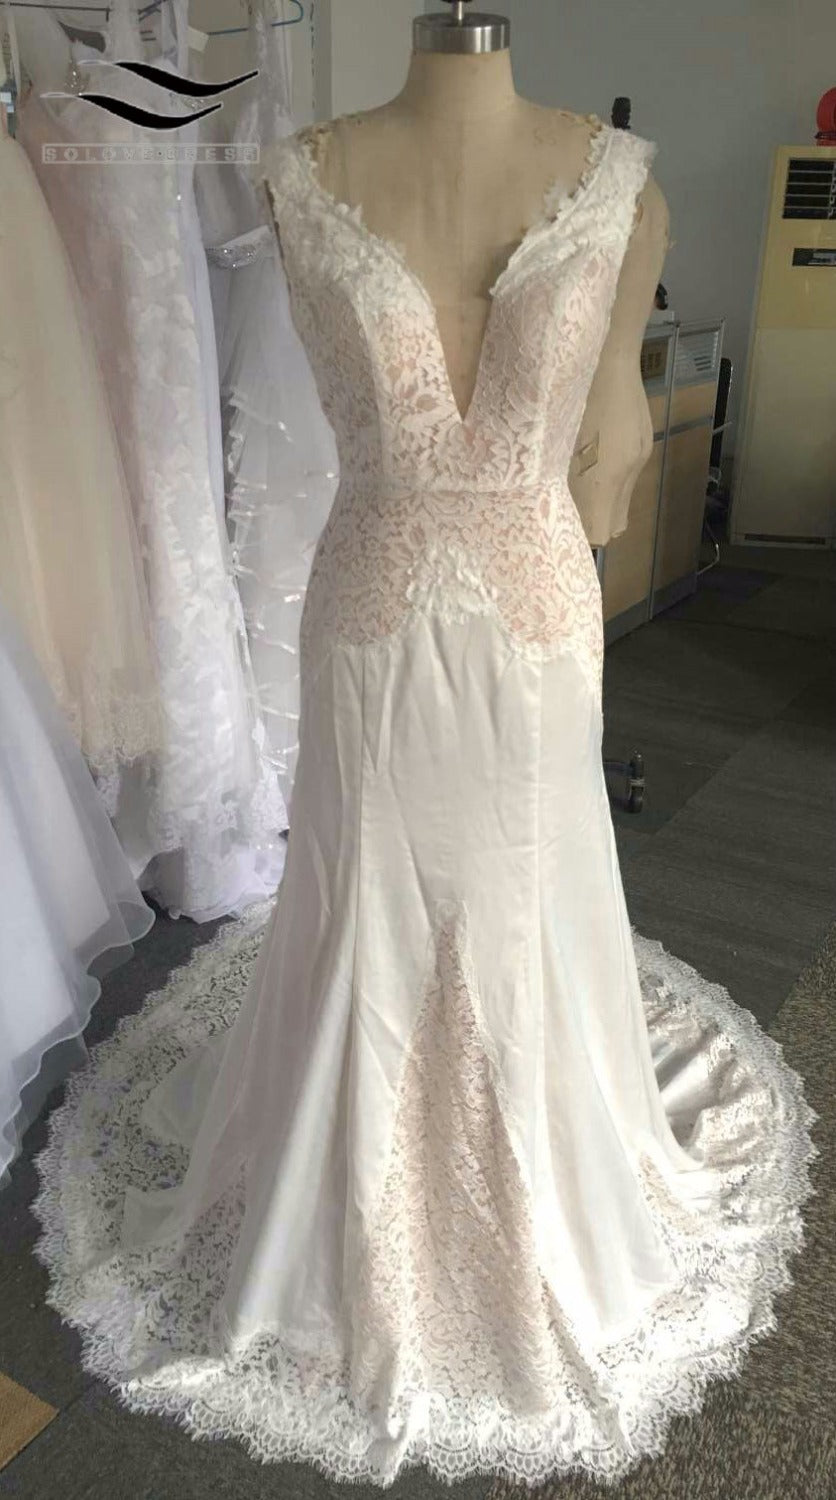 2017 White or Ivory Ruched Lace Mermaid Wedding Dress  High Quality